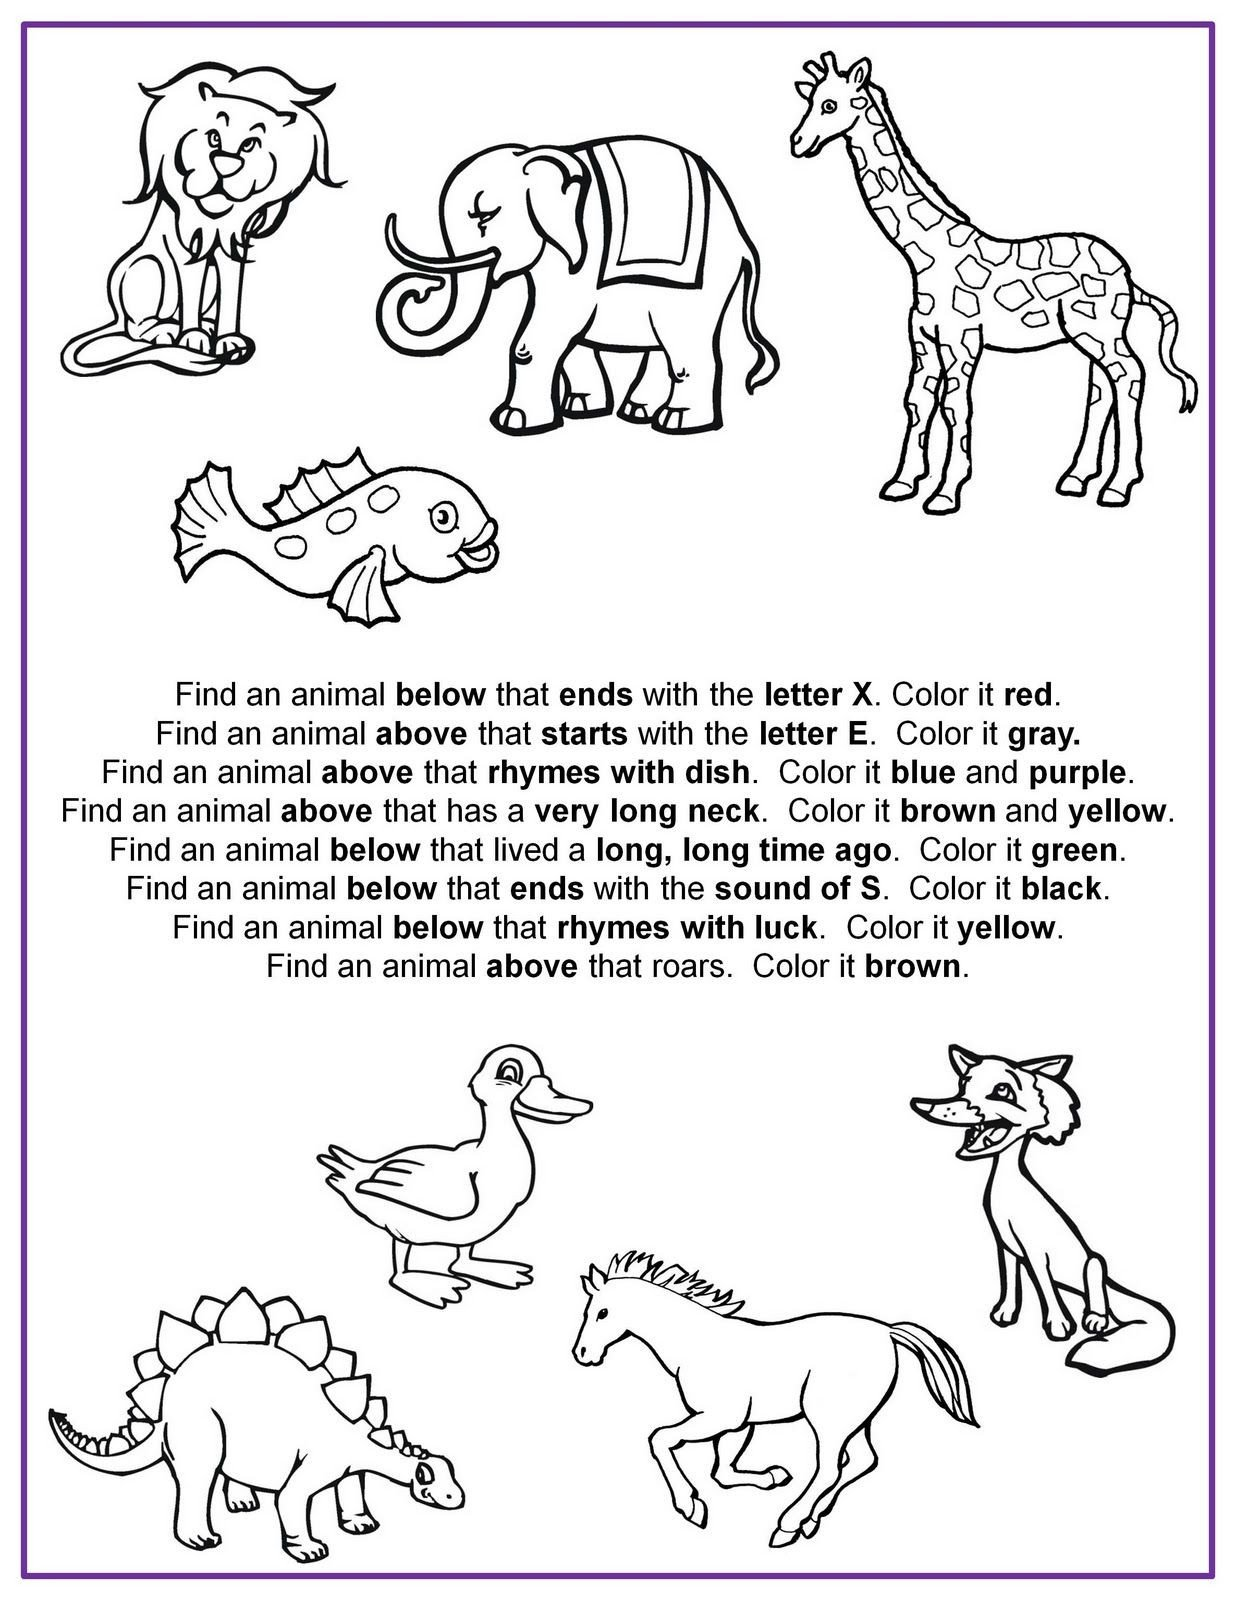 Following Directions Worksheet for Kindergarten Nonna and Me Find It Color It Following Directions